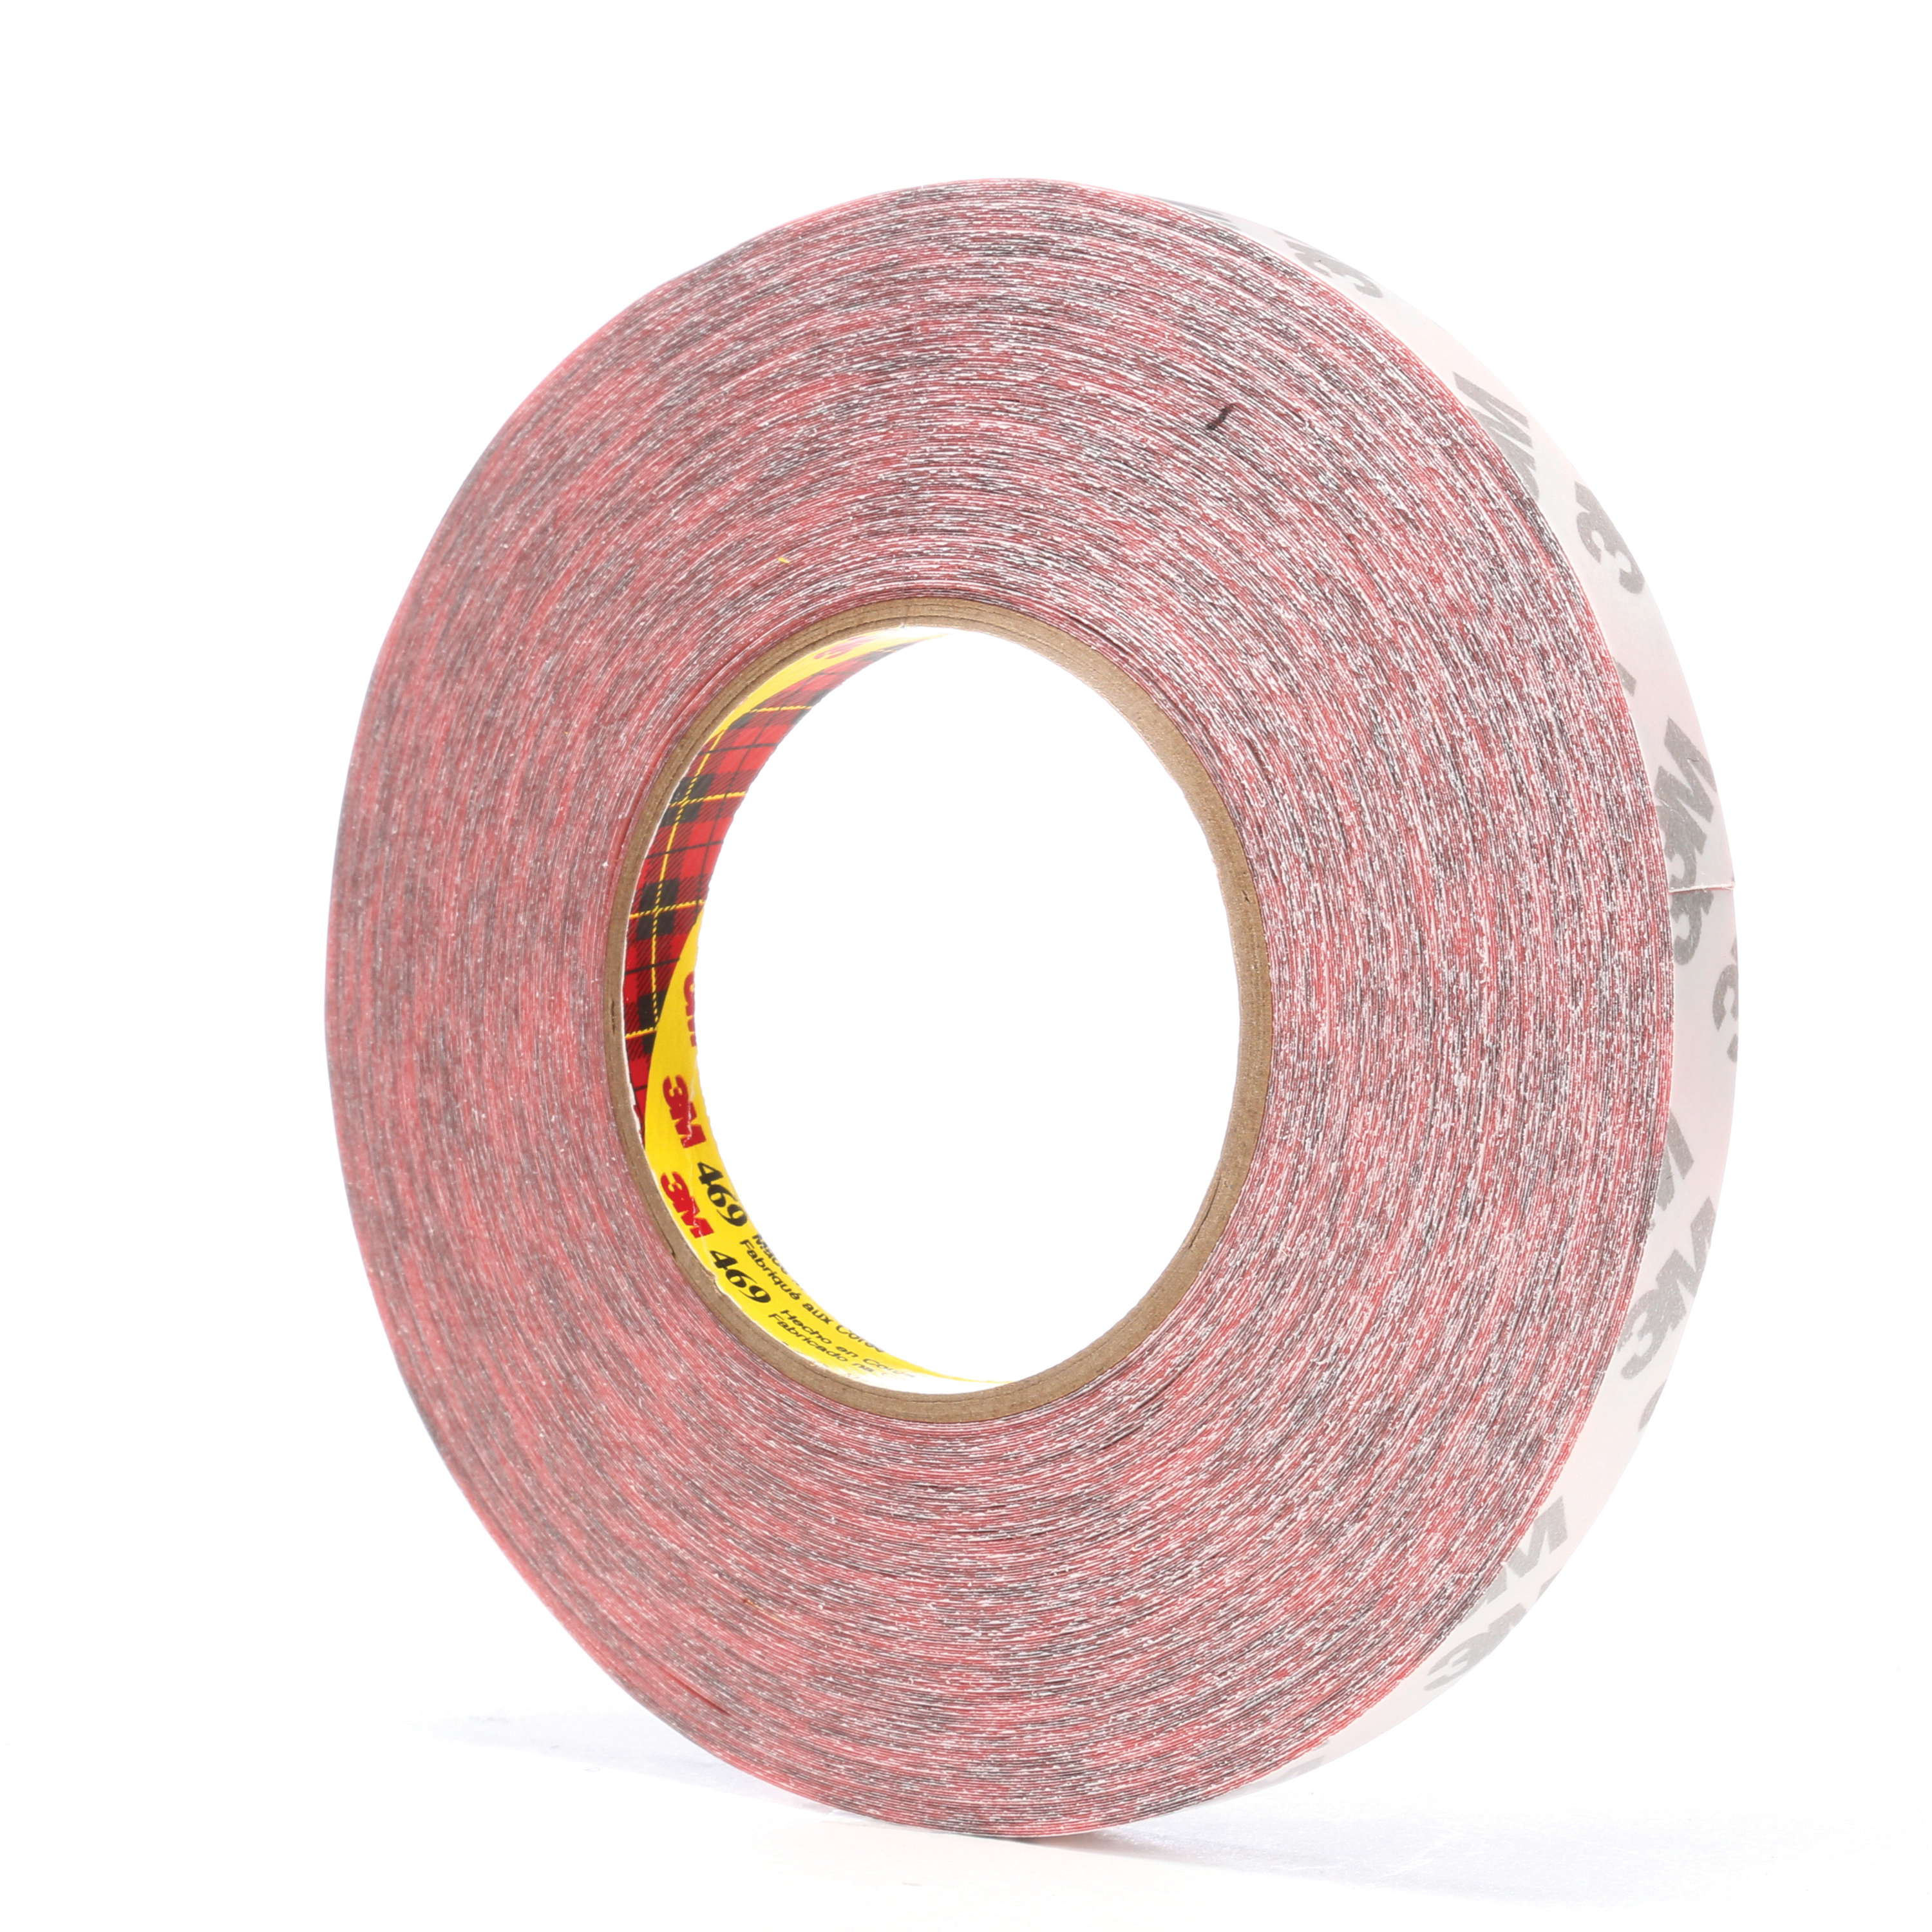 3M™ 021200-38394 Non-Repulpable Double Coated Splicing Tape, 60 yd L x 1/2 in W, 5.5 mil THK, 340 Acrylic Adhesive, Tissue Paper Backing, Red